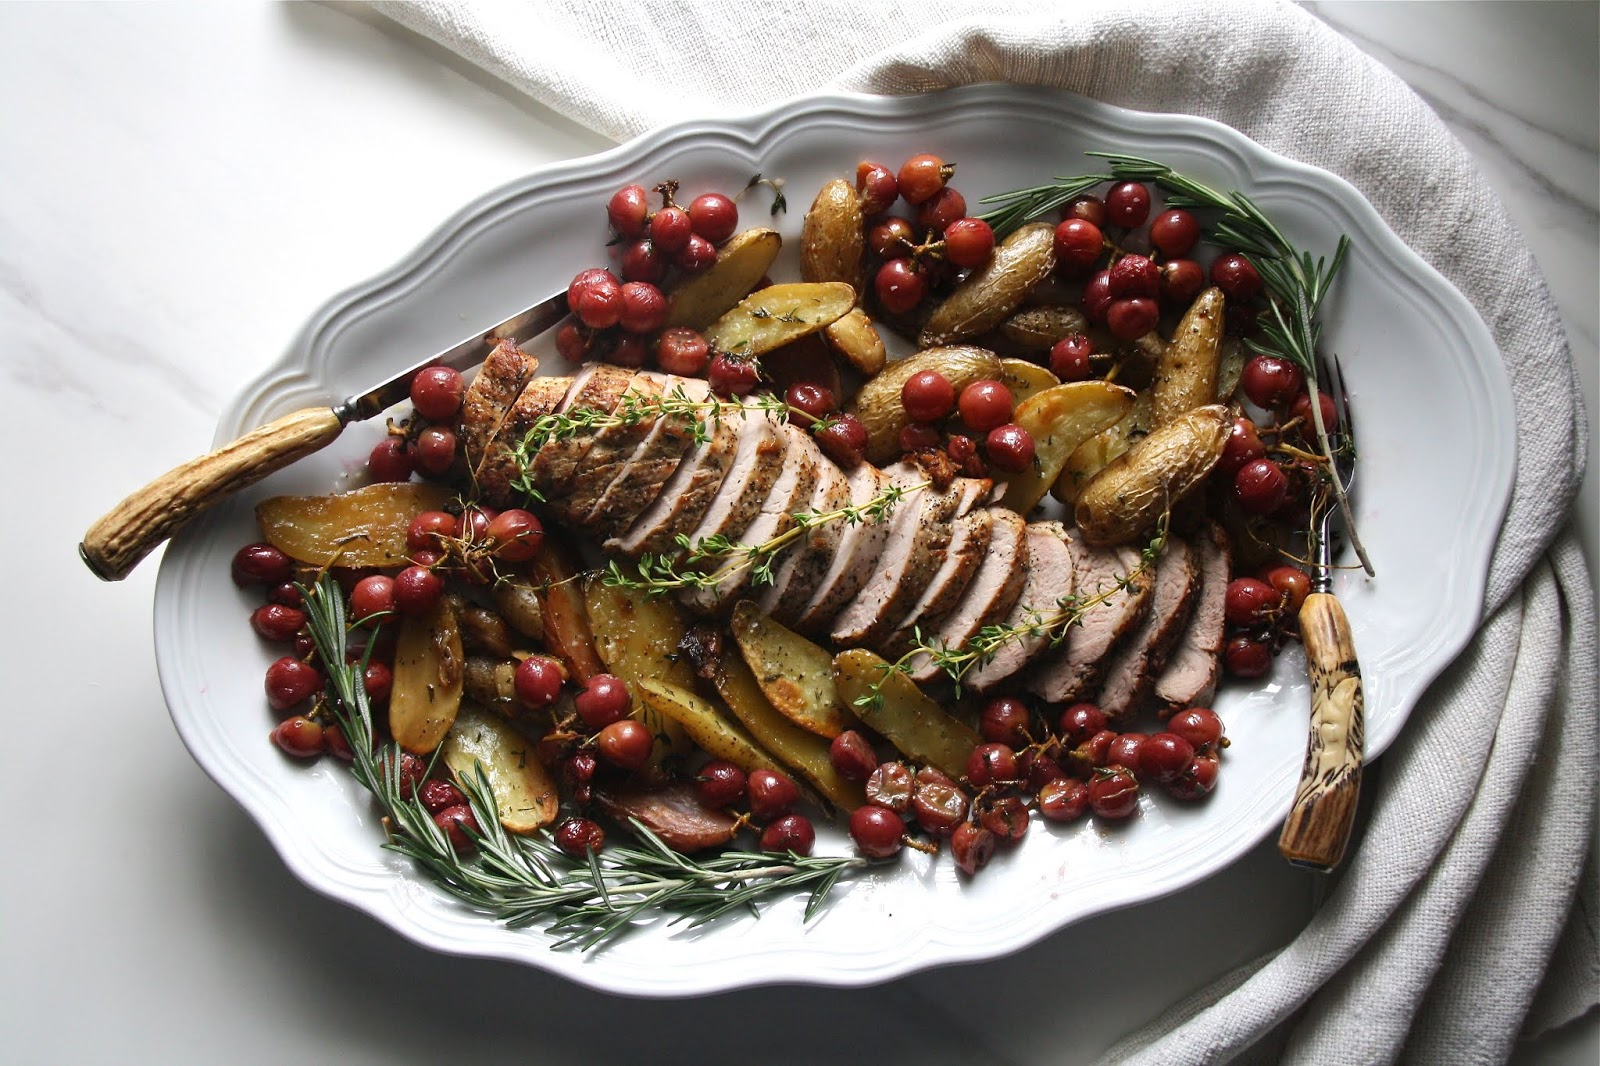 Roasted Pork with Herbs and Grapes